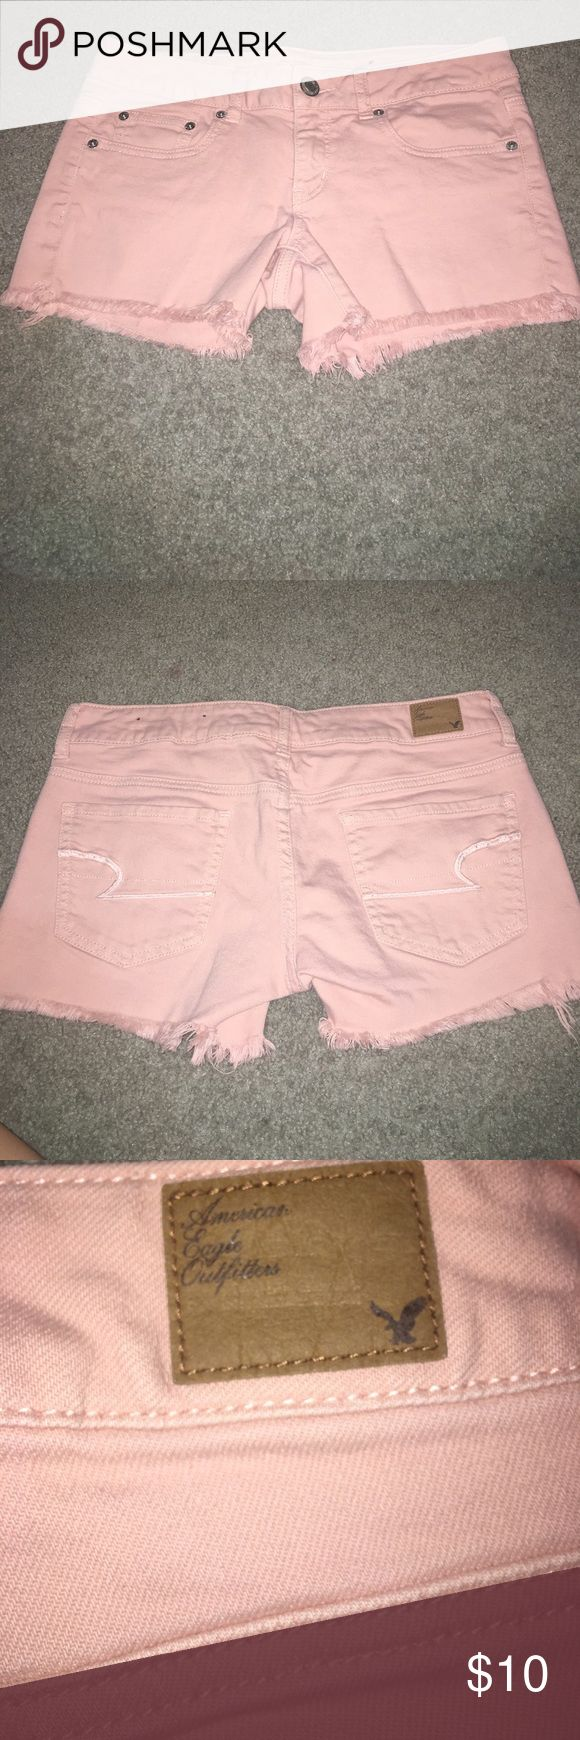 Light pink shorts Light pink American eagle shorts American Eagle Outfitters Shorts